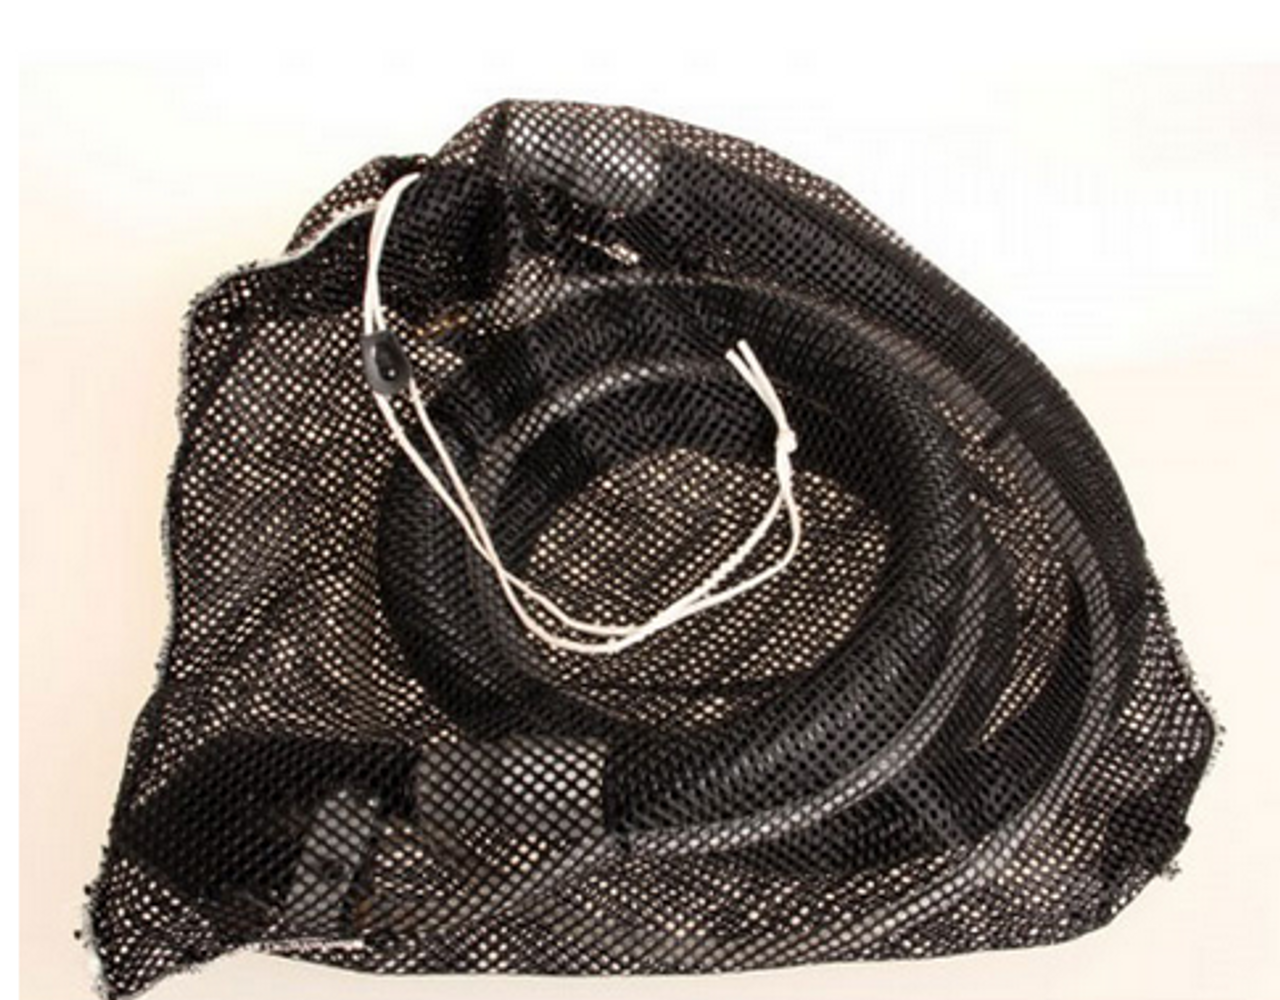 The mesh bag makes carrying the upholstery kit easy to store and transport.